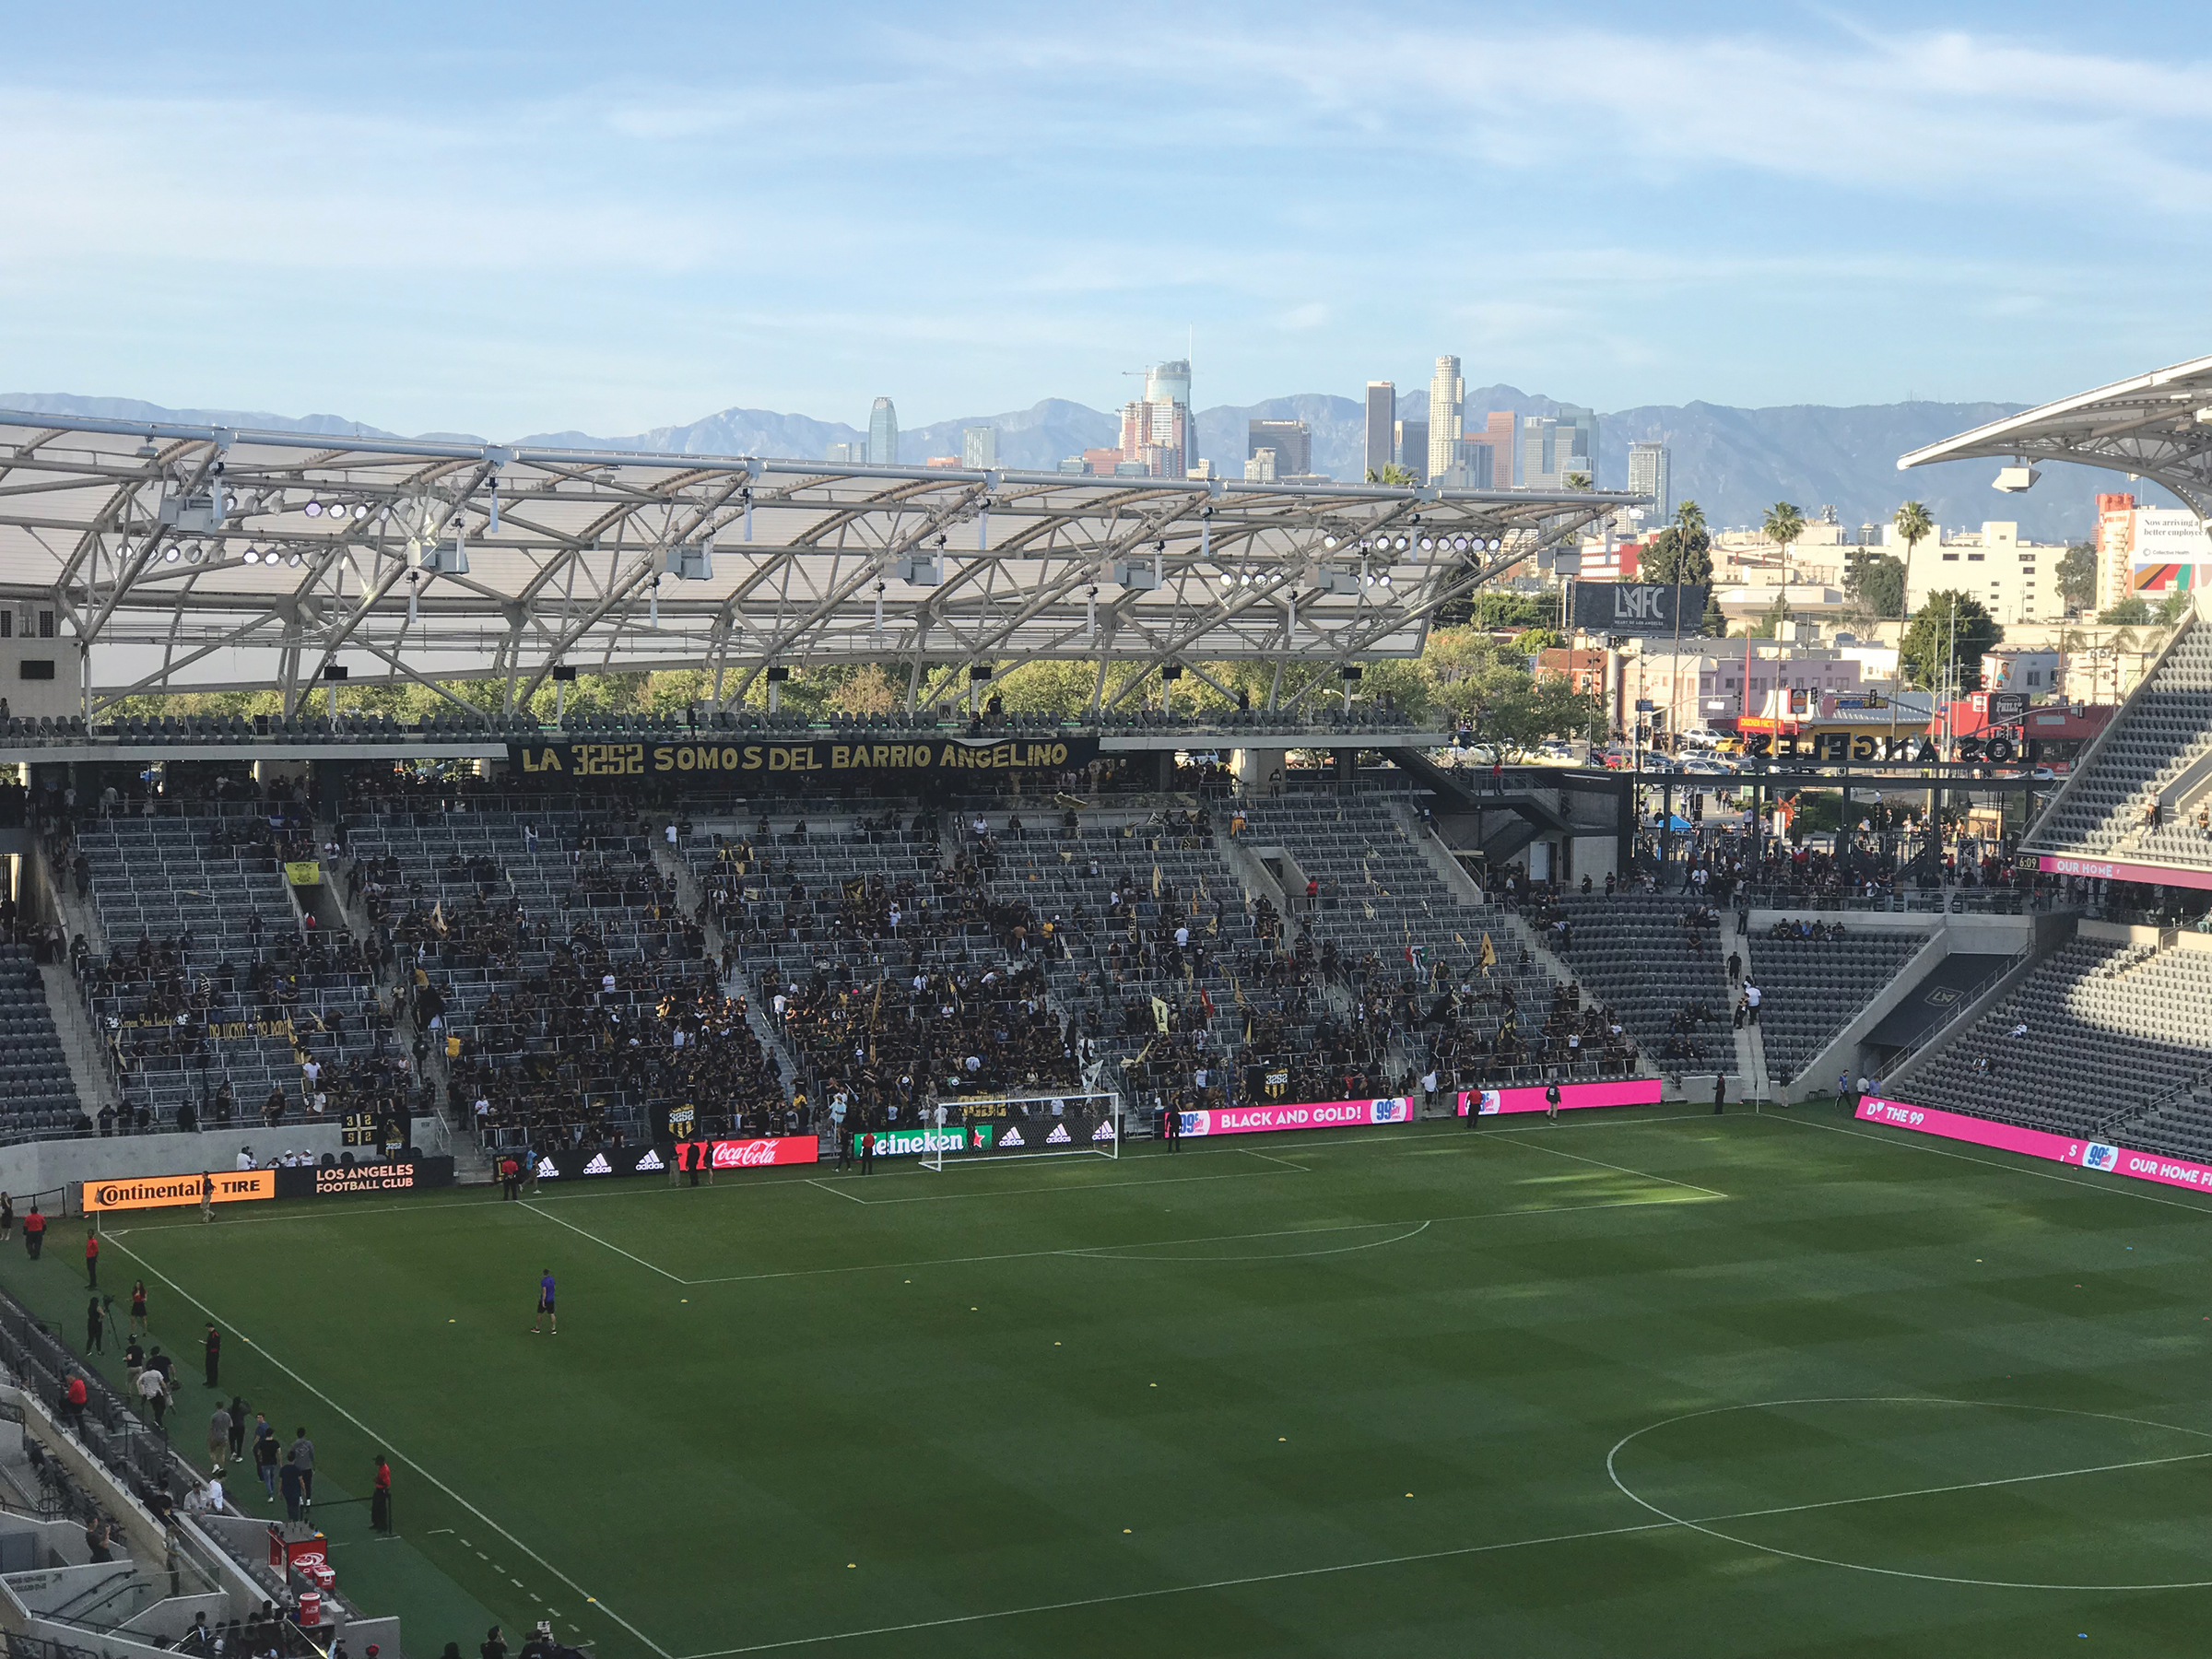 LAFC's group of supporters referred to 3252 arrive early to get a space to celebrate their unbeaten season thus far. (Cameron Buford photo)